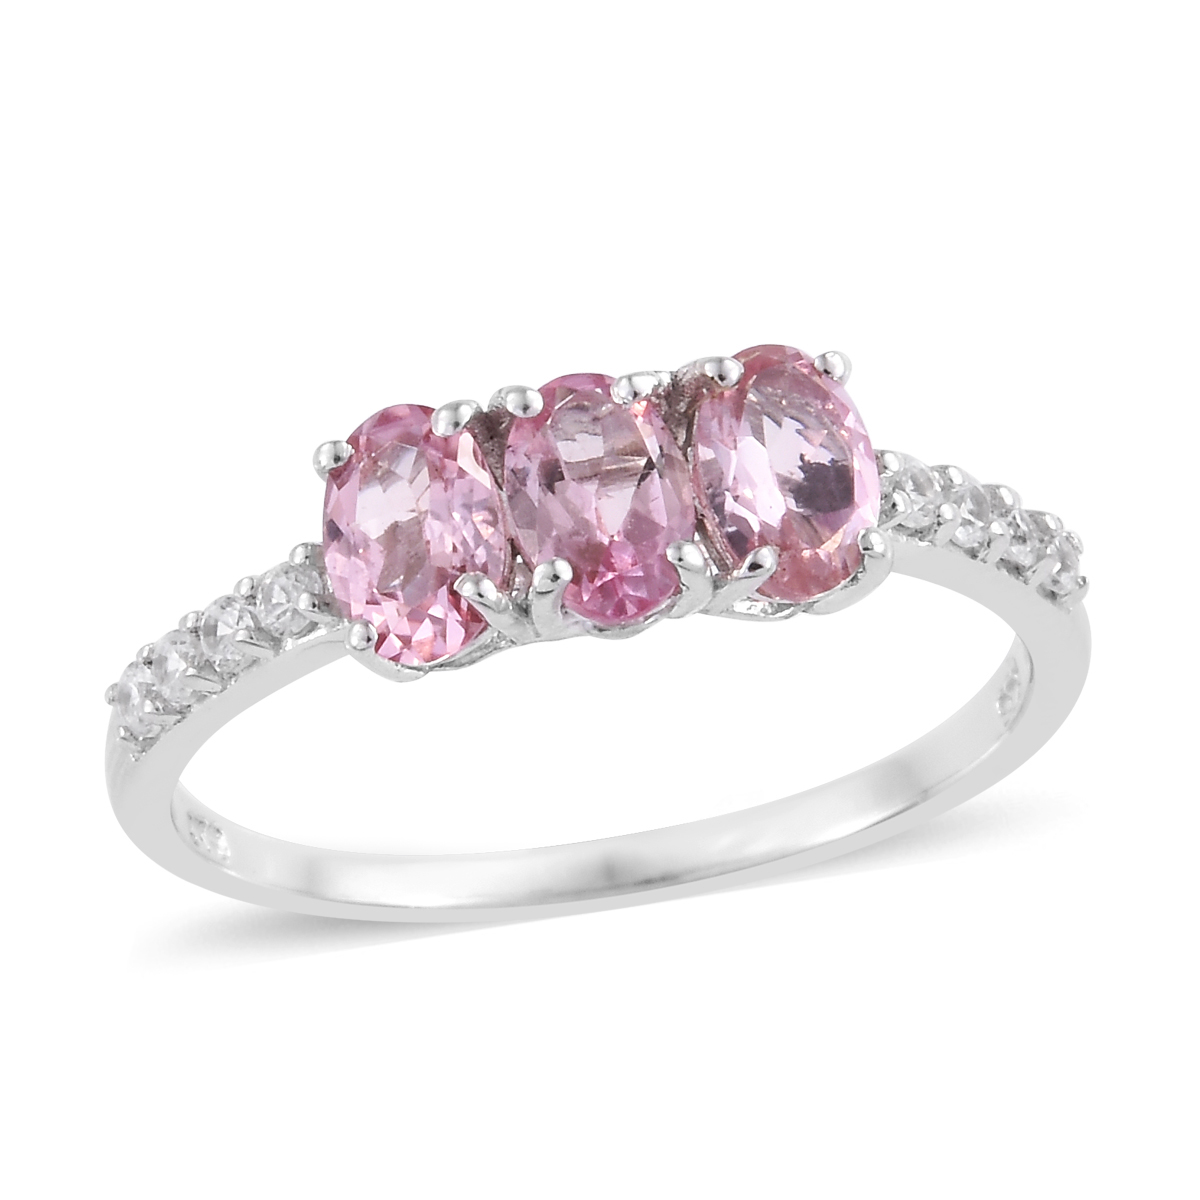 Gemstone Fine Pink Opal Fissure Filled Ruby Halo Ring Silver Platinum Plated Size 10 Ct 1.75